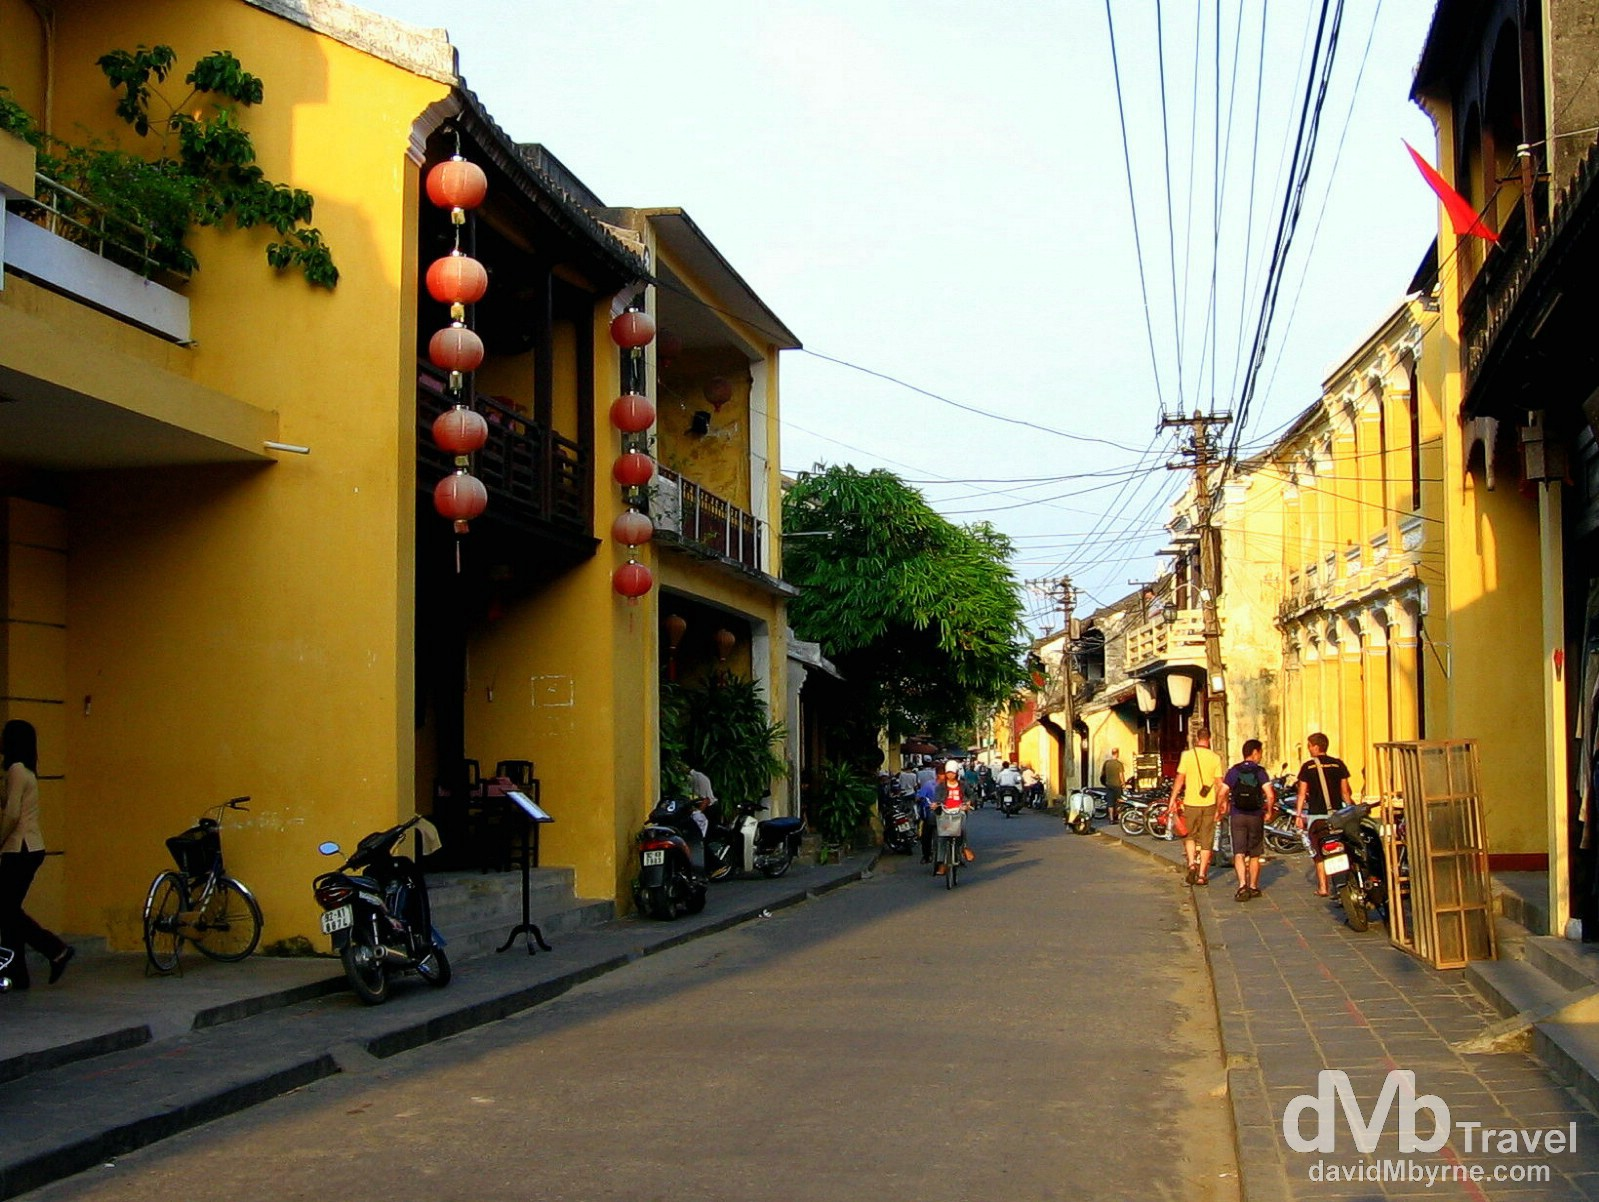 On the streets of the yellow streets of the UNESCO-listed Hoi An Ancient Town in central Vietnam. September 11th, 2005.